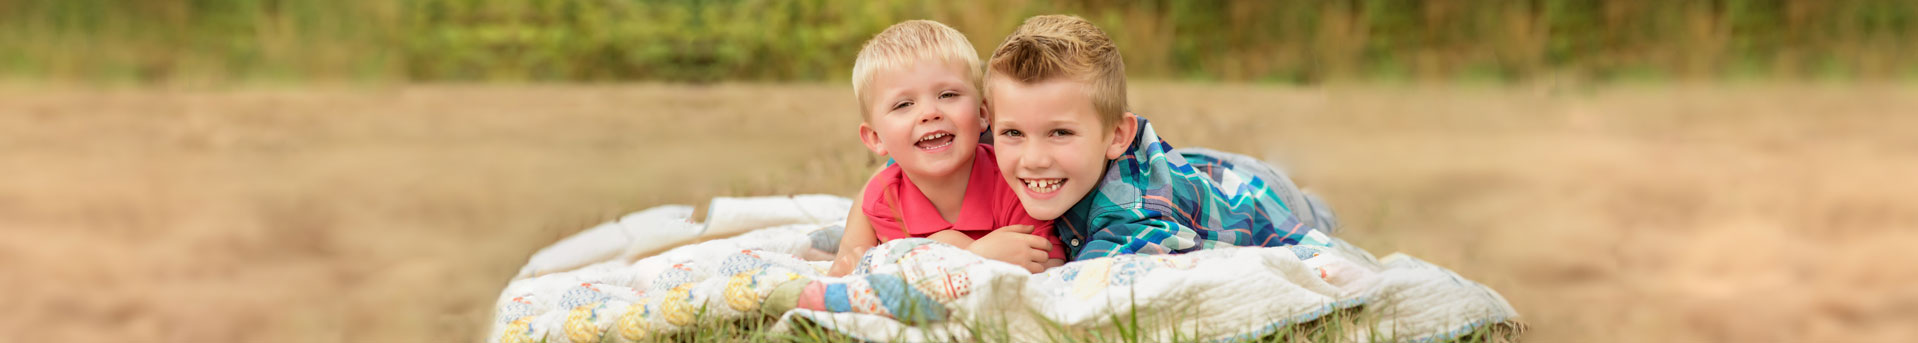 Two boys on blanket